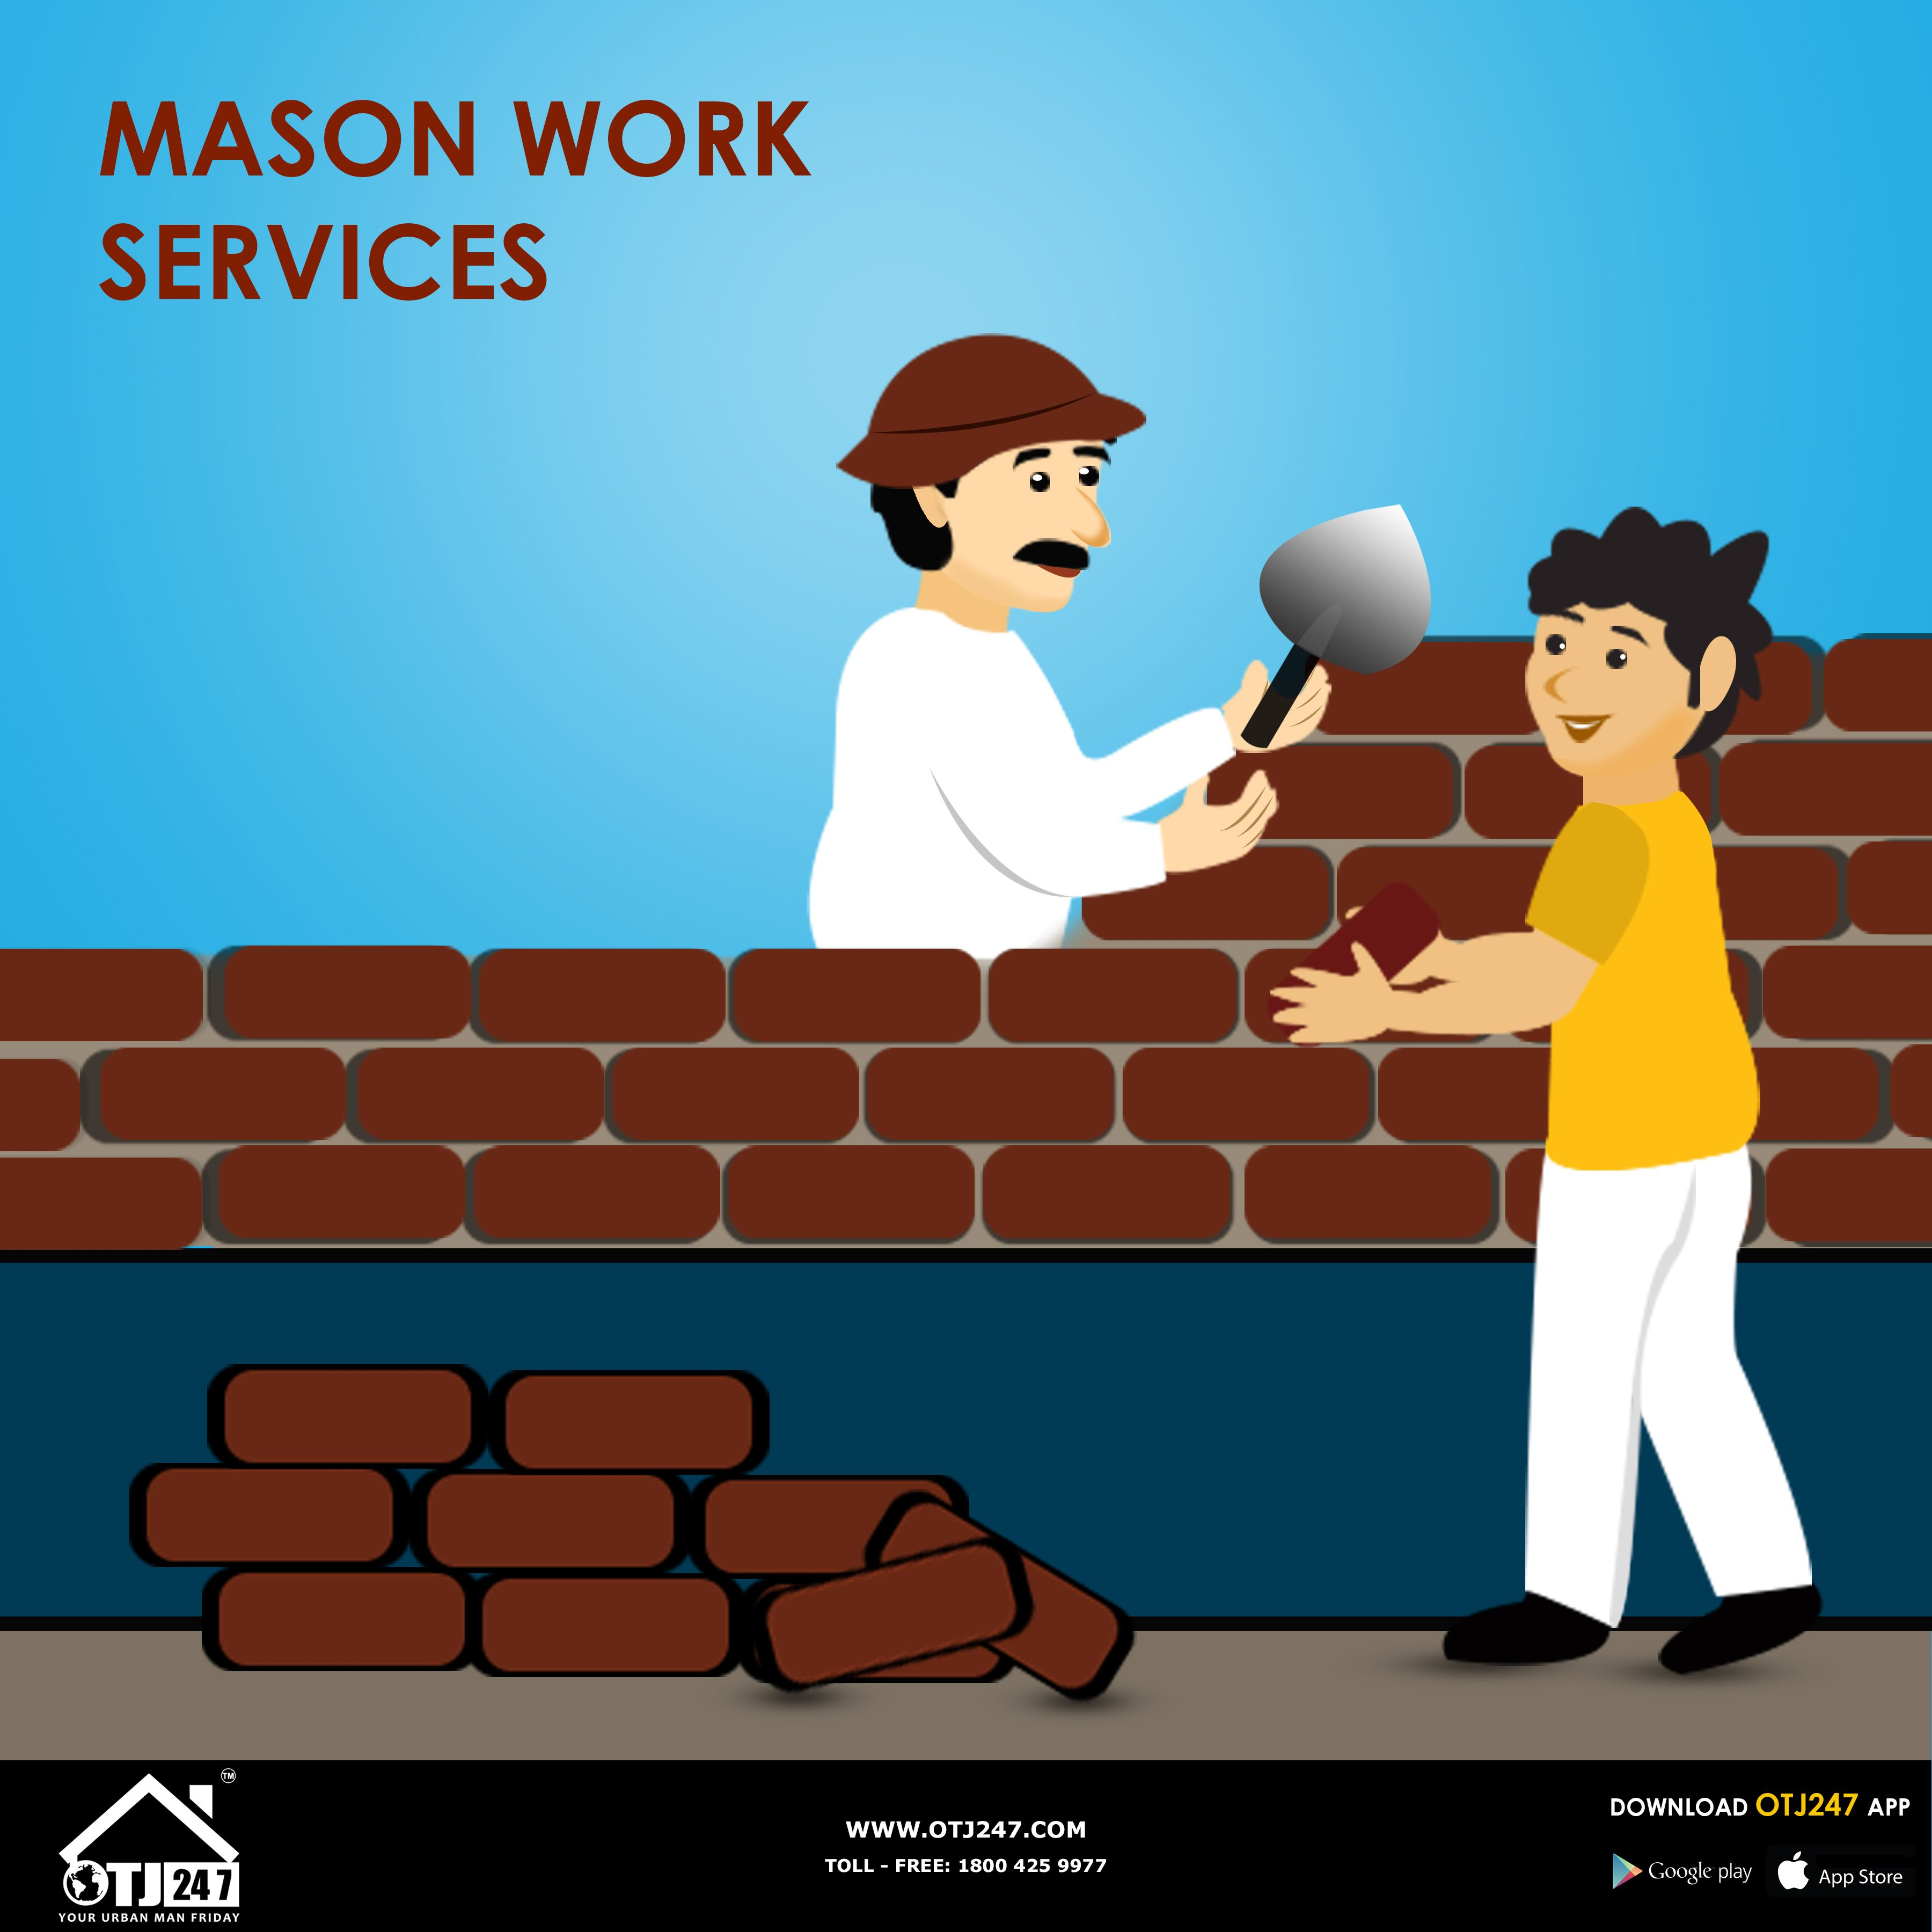 Mason Work Services In Bangalore. Seepage Painting